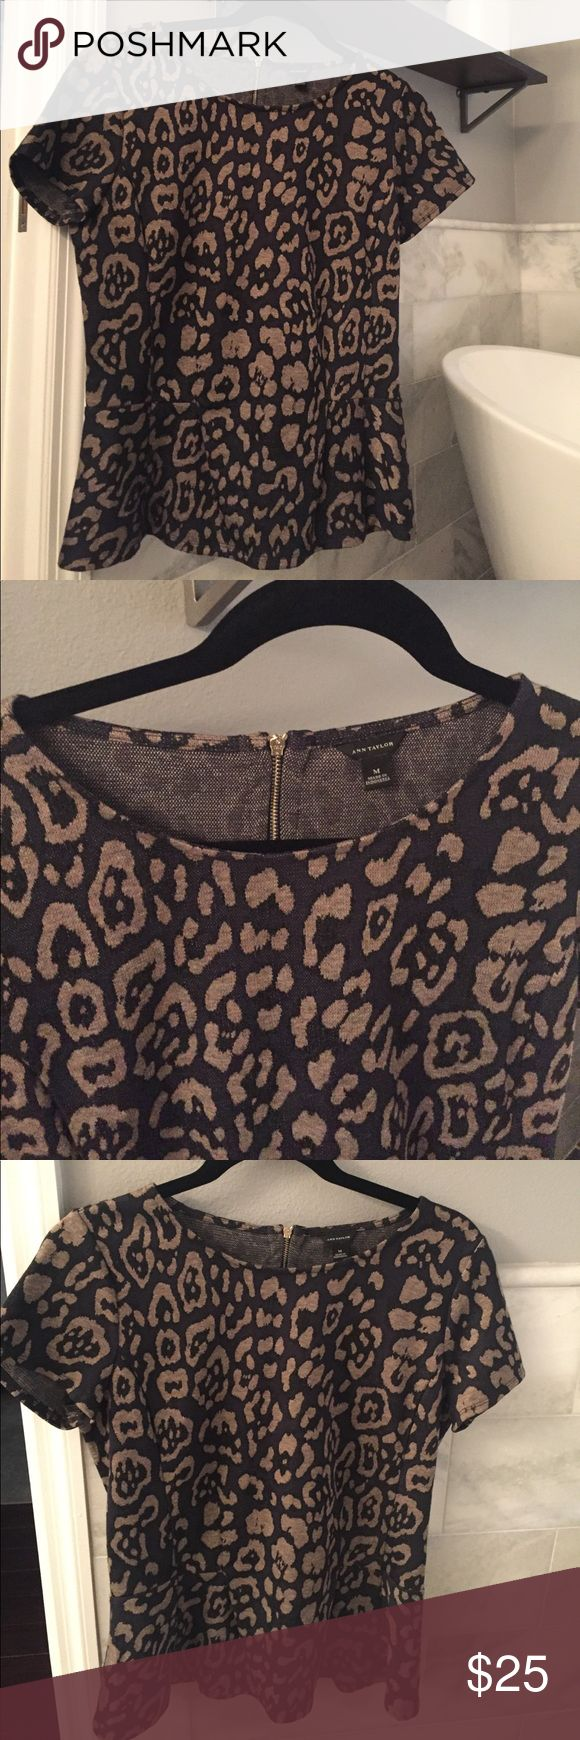 Ann Taylor Peplum Top Animal print jacquard peplum top Zip up back Excellent condition Super soft material Ann Taylor Tops